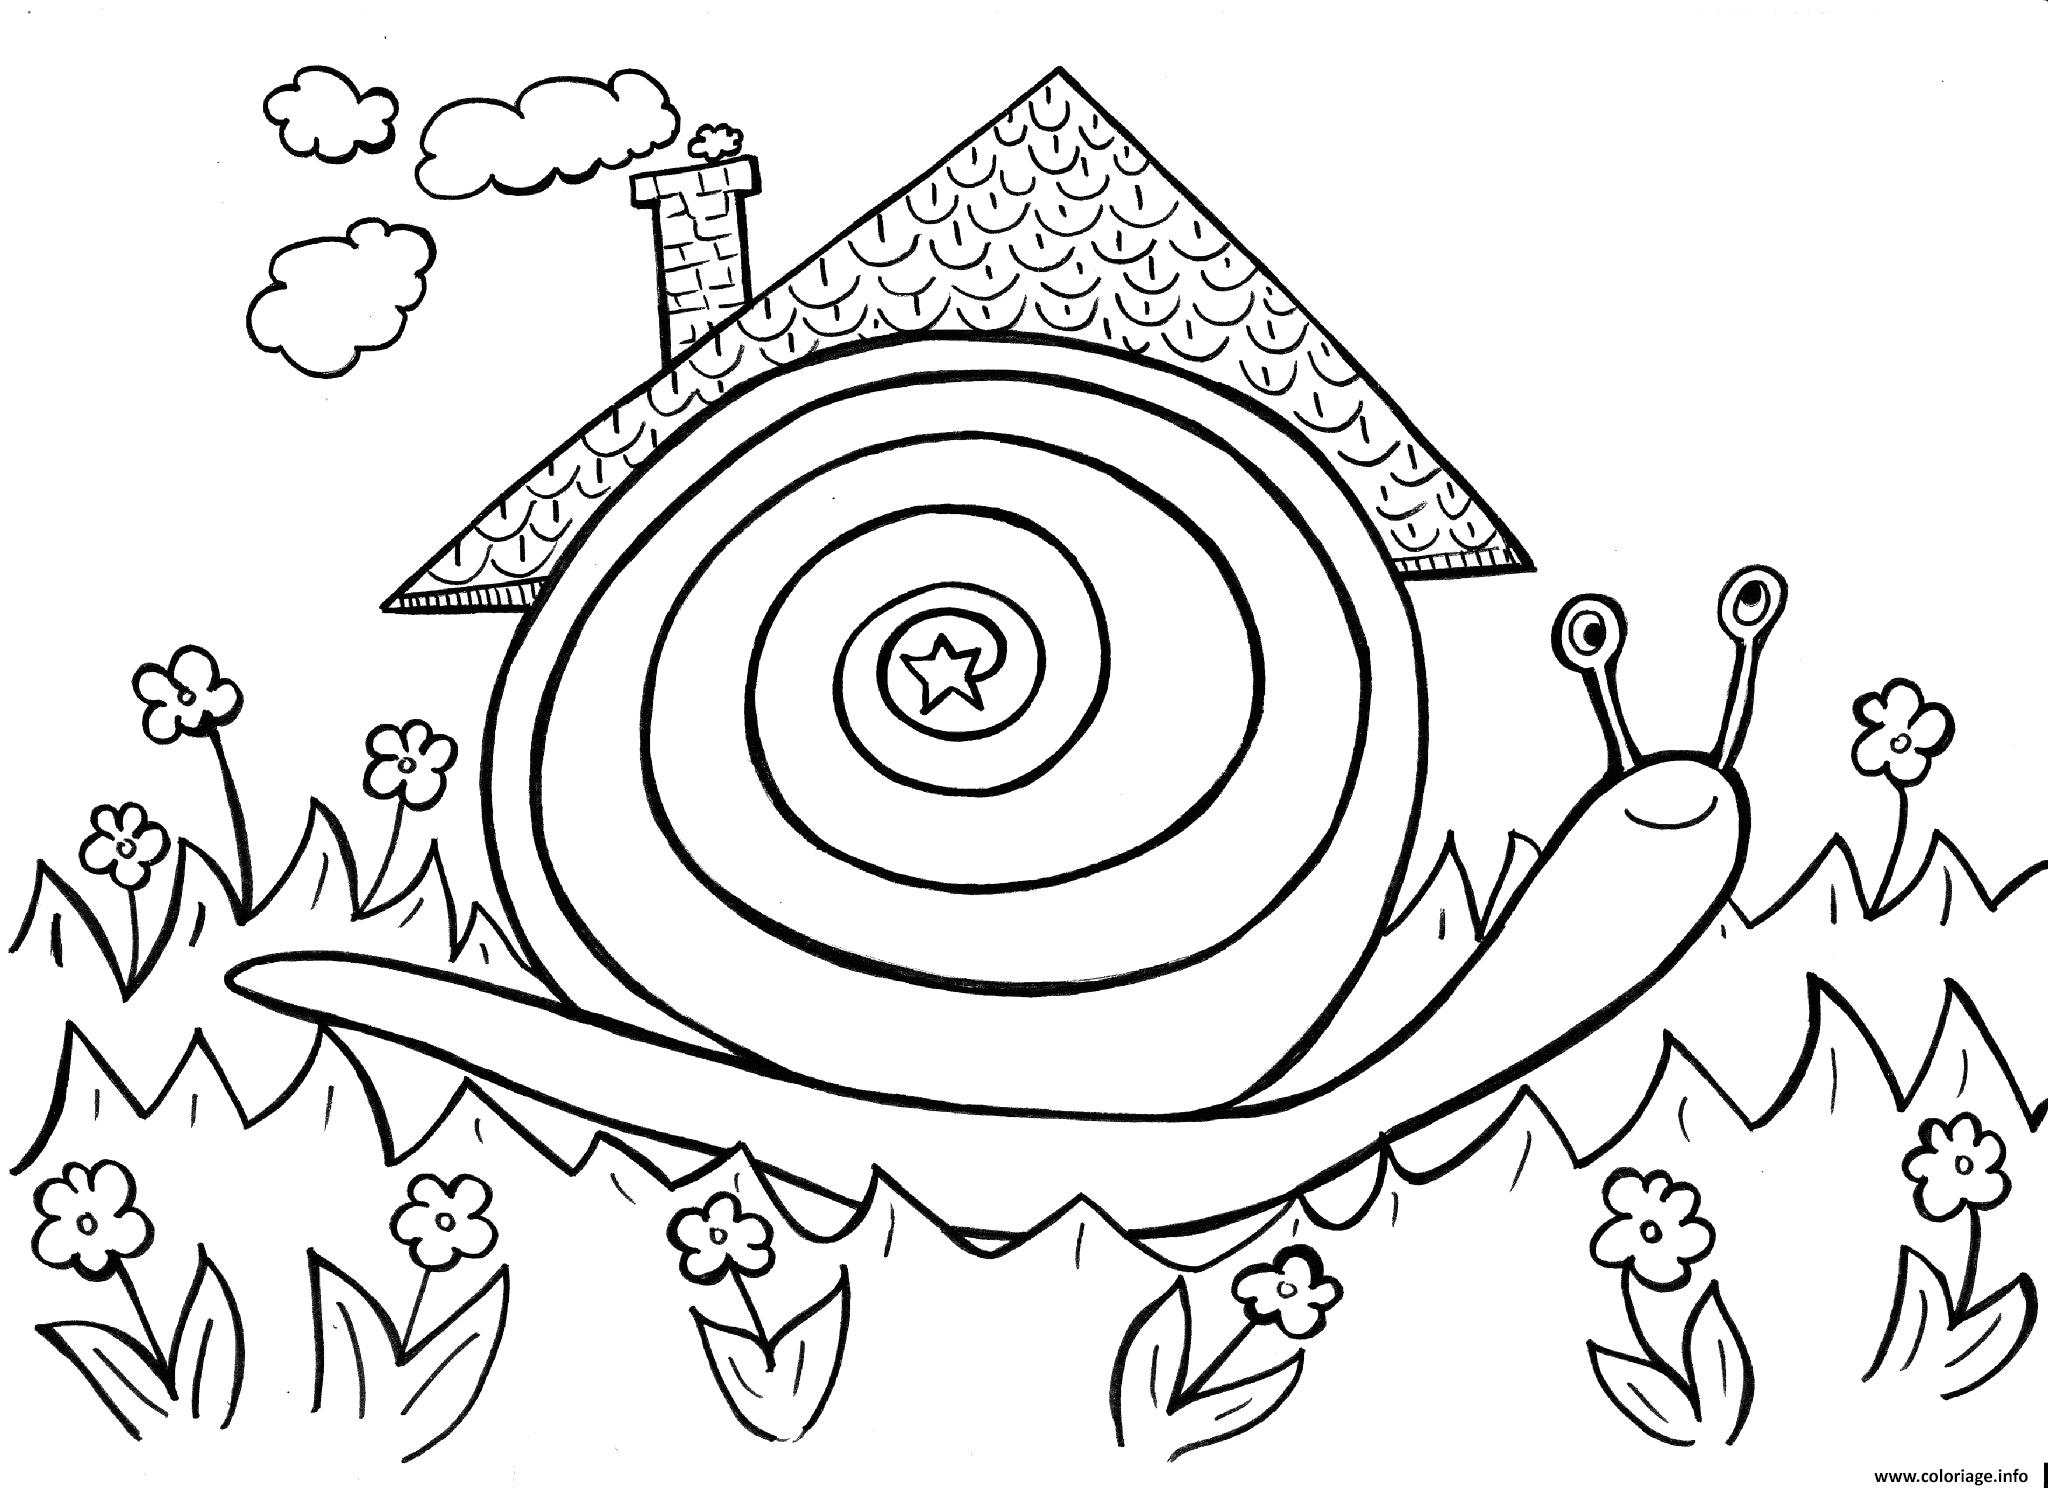 Coloriage Escargot Dans Son Habitat Naturel Dessin